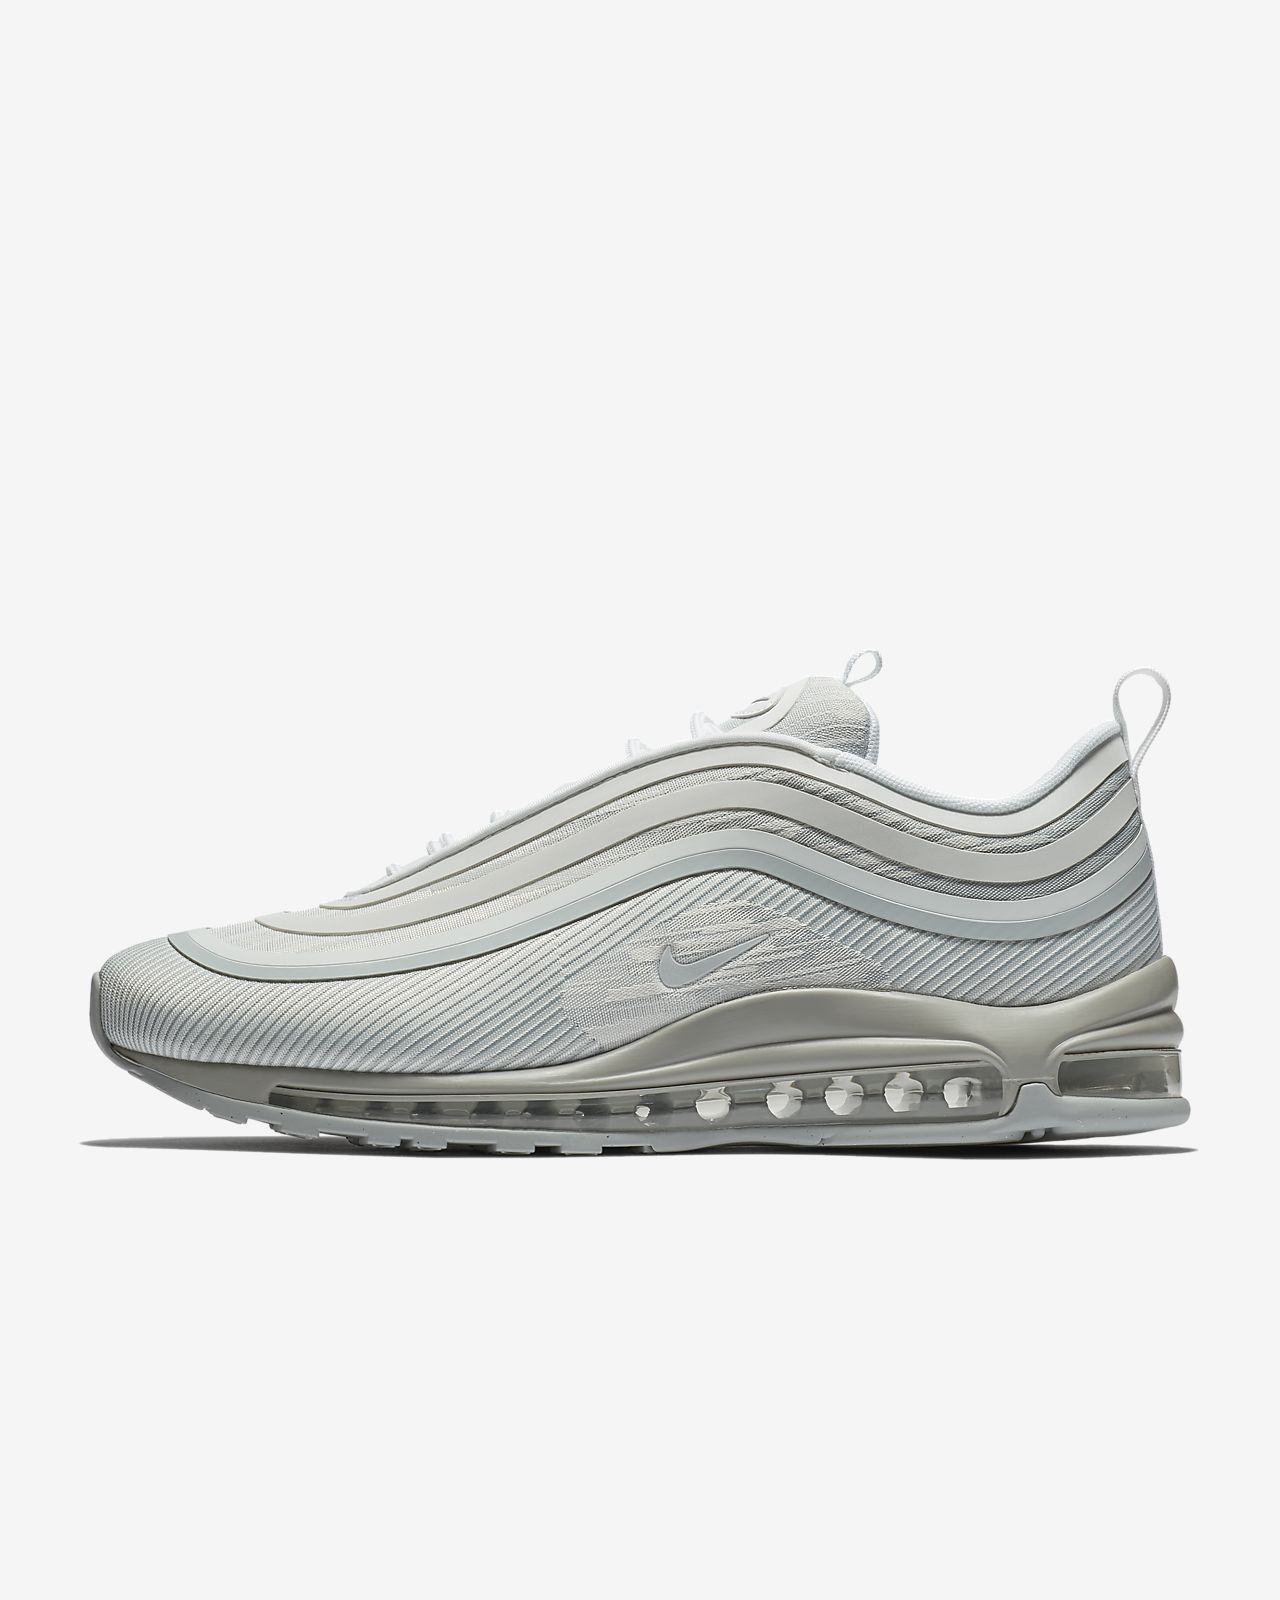 6724a03878 Nike Air Max 97 Ultra '17 Men's Shoe. Nike.com CA